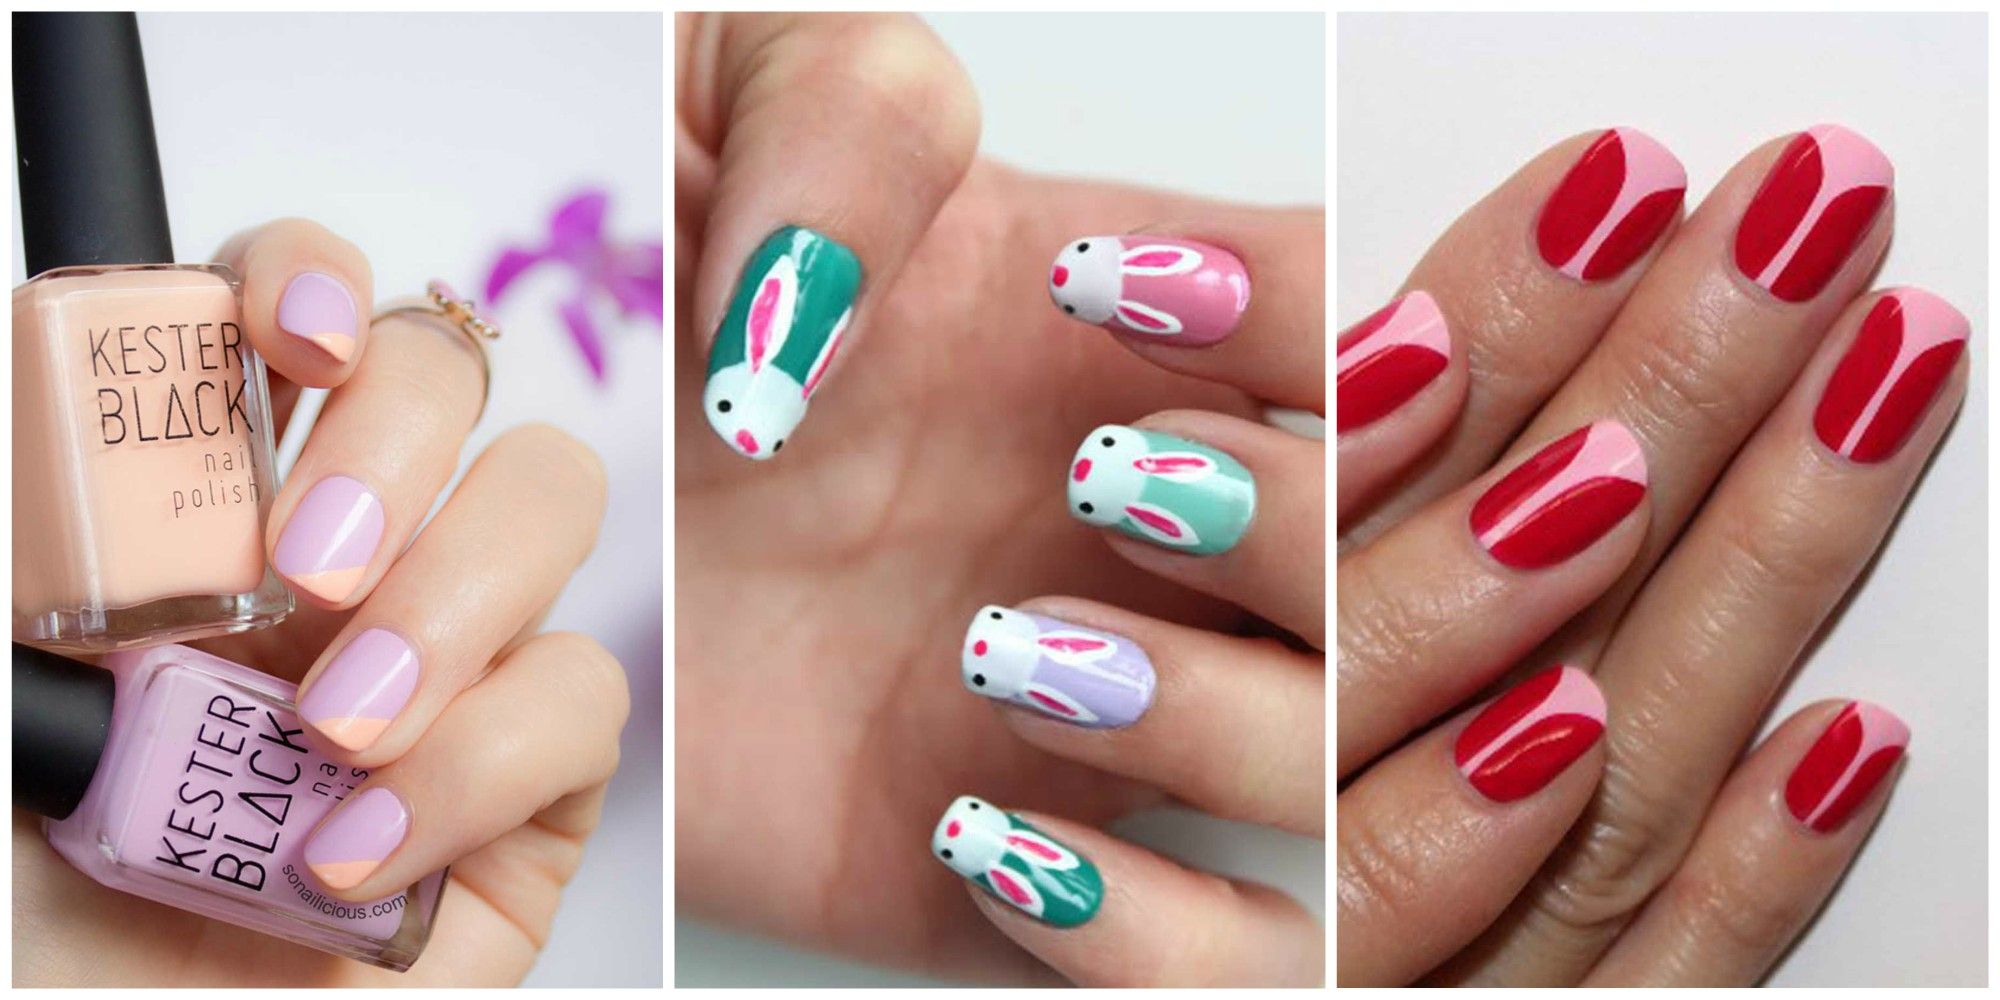 16 Cute Easter Nail Designs - Best Easter Nail Art Ideas